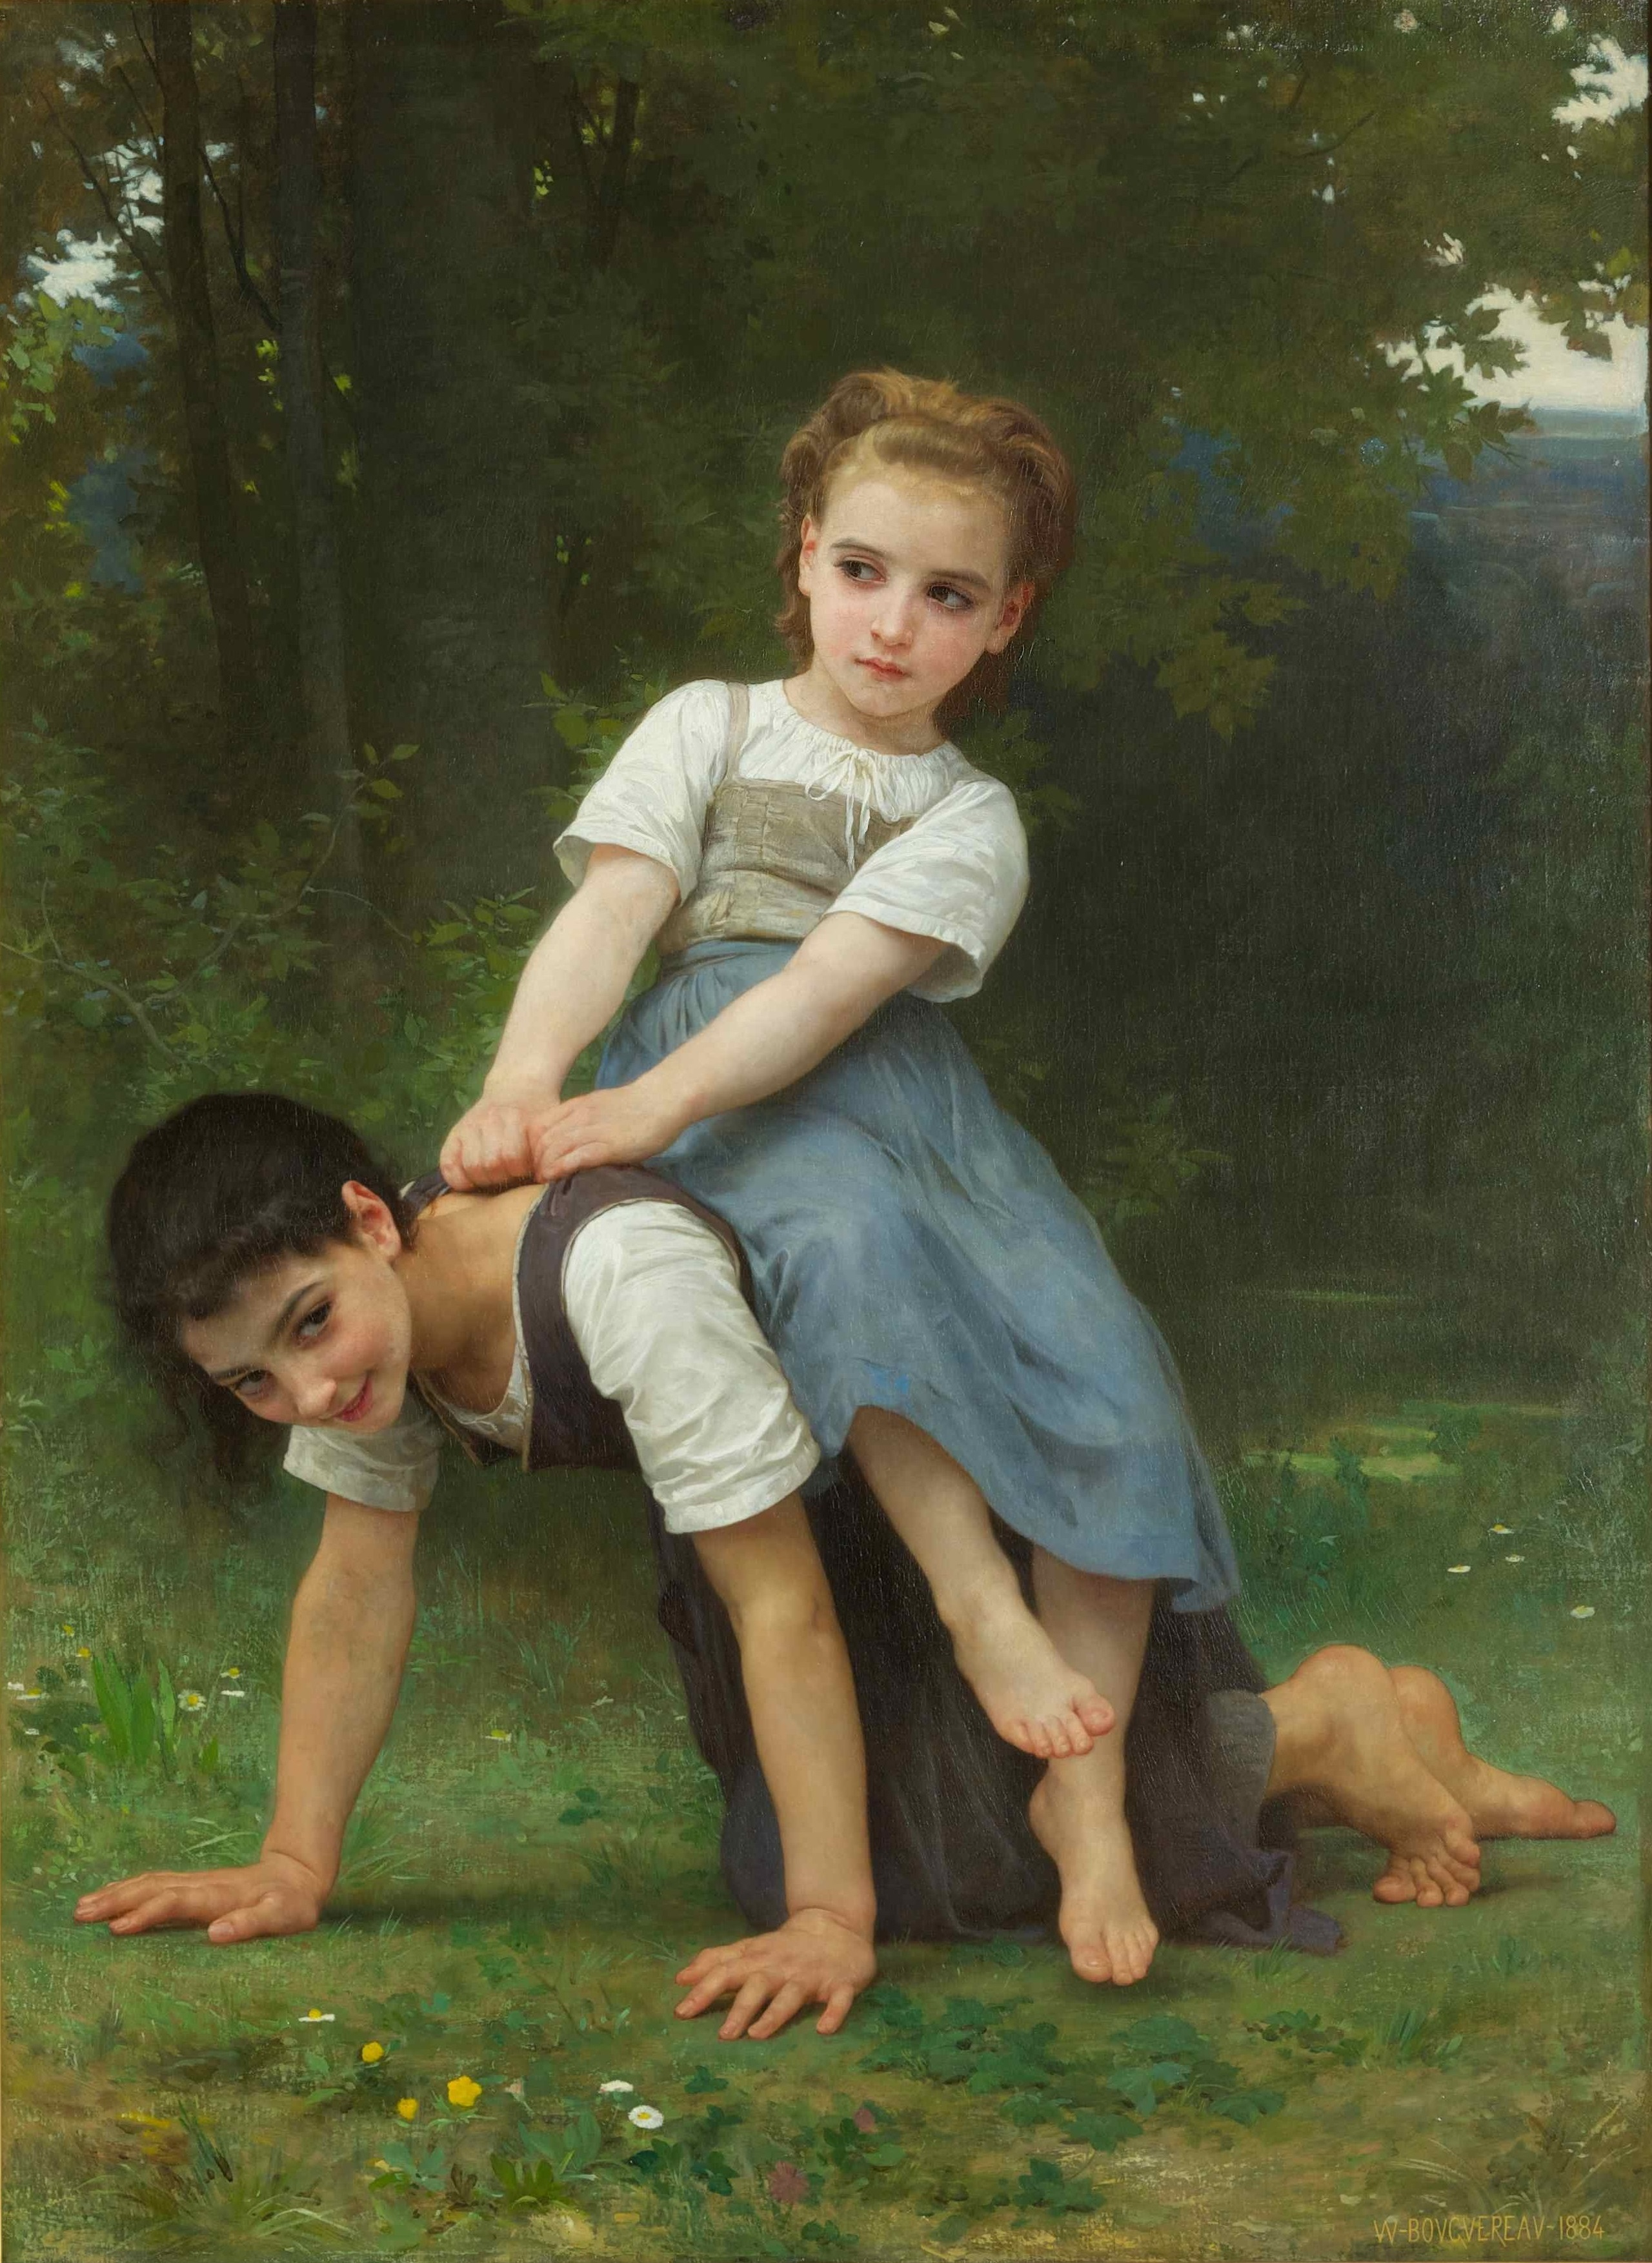 William-Adolphe Bouguereau - La Bourrique (The Horseback Ride) - Google Art Project